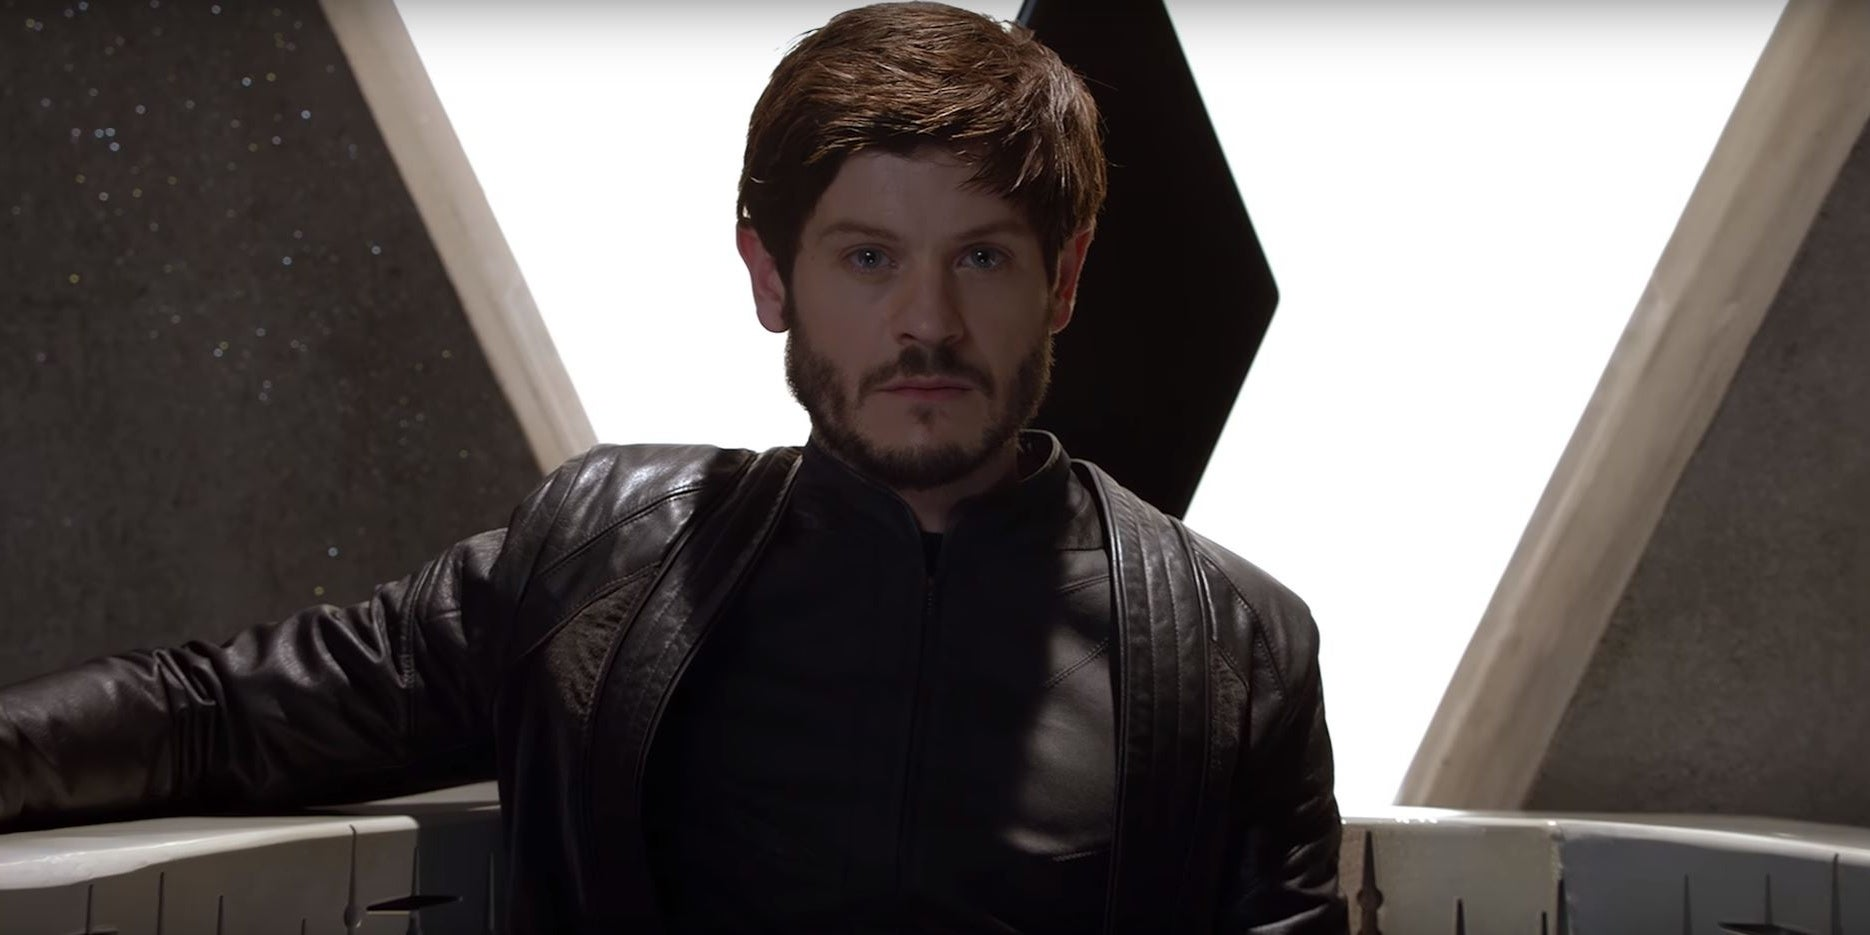 Marvel 'Inhumans' IMAX Trailer Debut Delivers Thrills, Chills and a Giant Bulldog